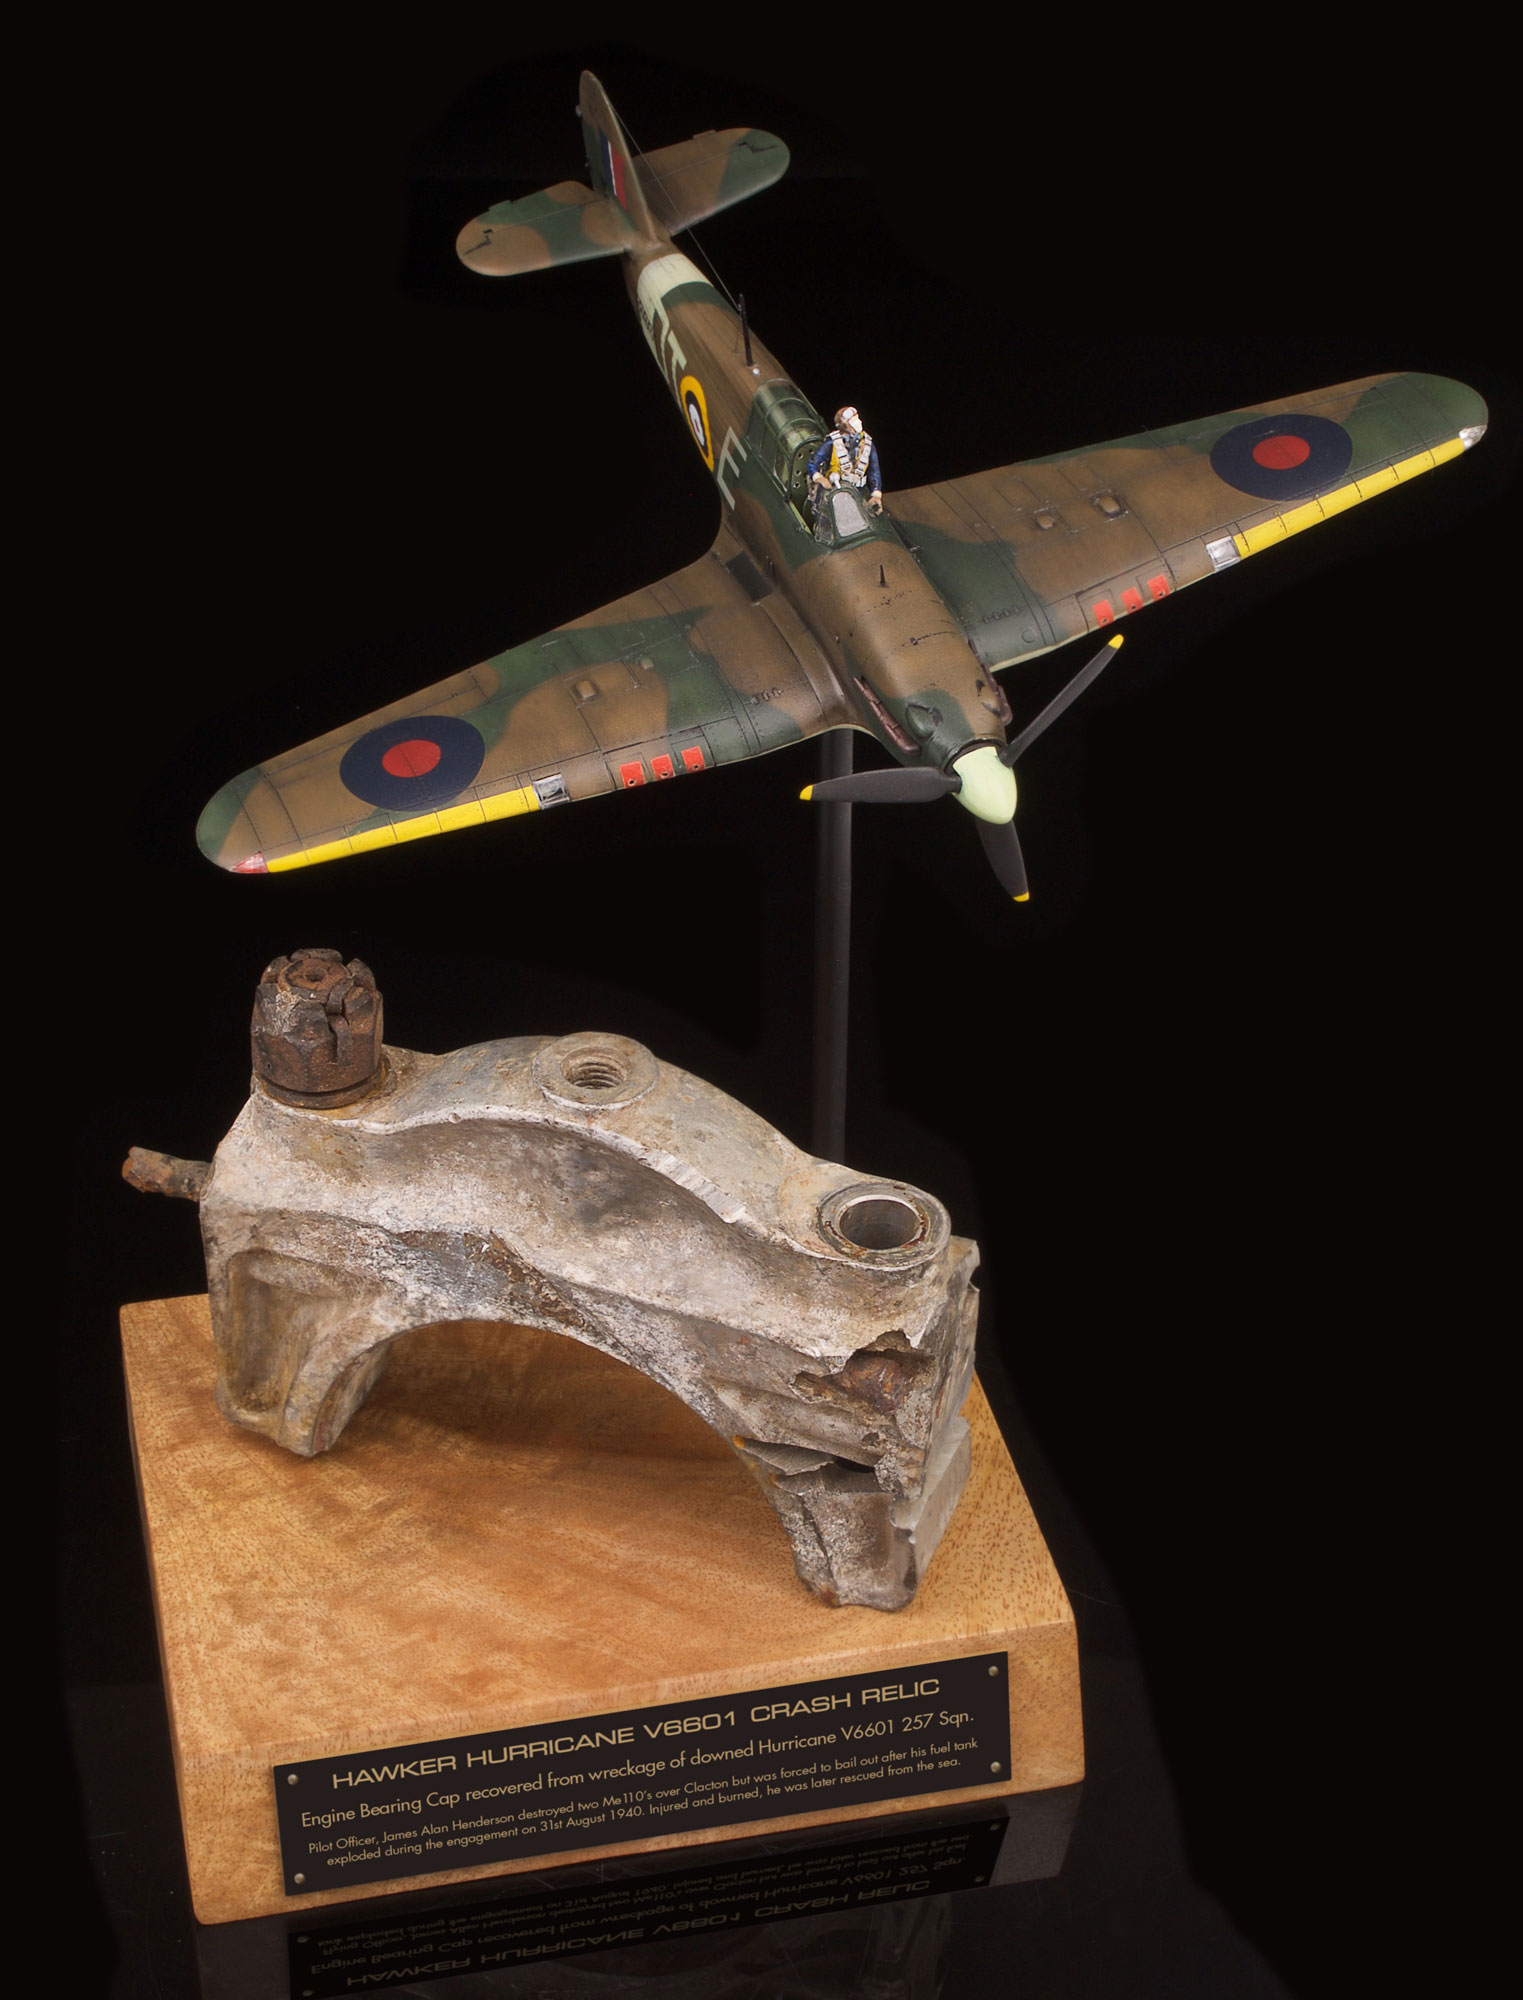 HAWKER HURRICANE ENGINE BEARING CAP FROM BATTLE OF BRITAIN CRASH WRECKAGE OF HURRICANE DT-E V6601